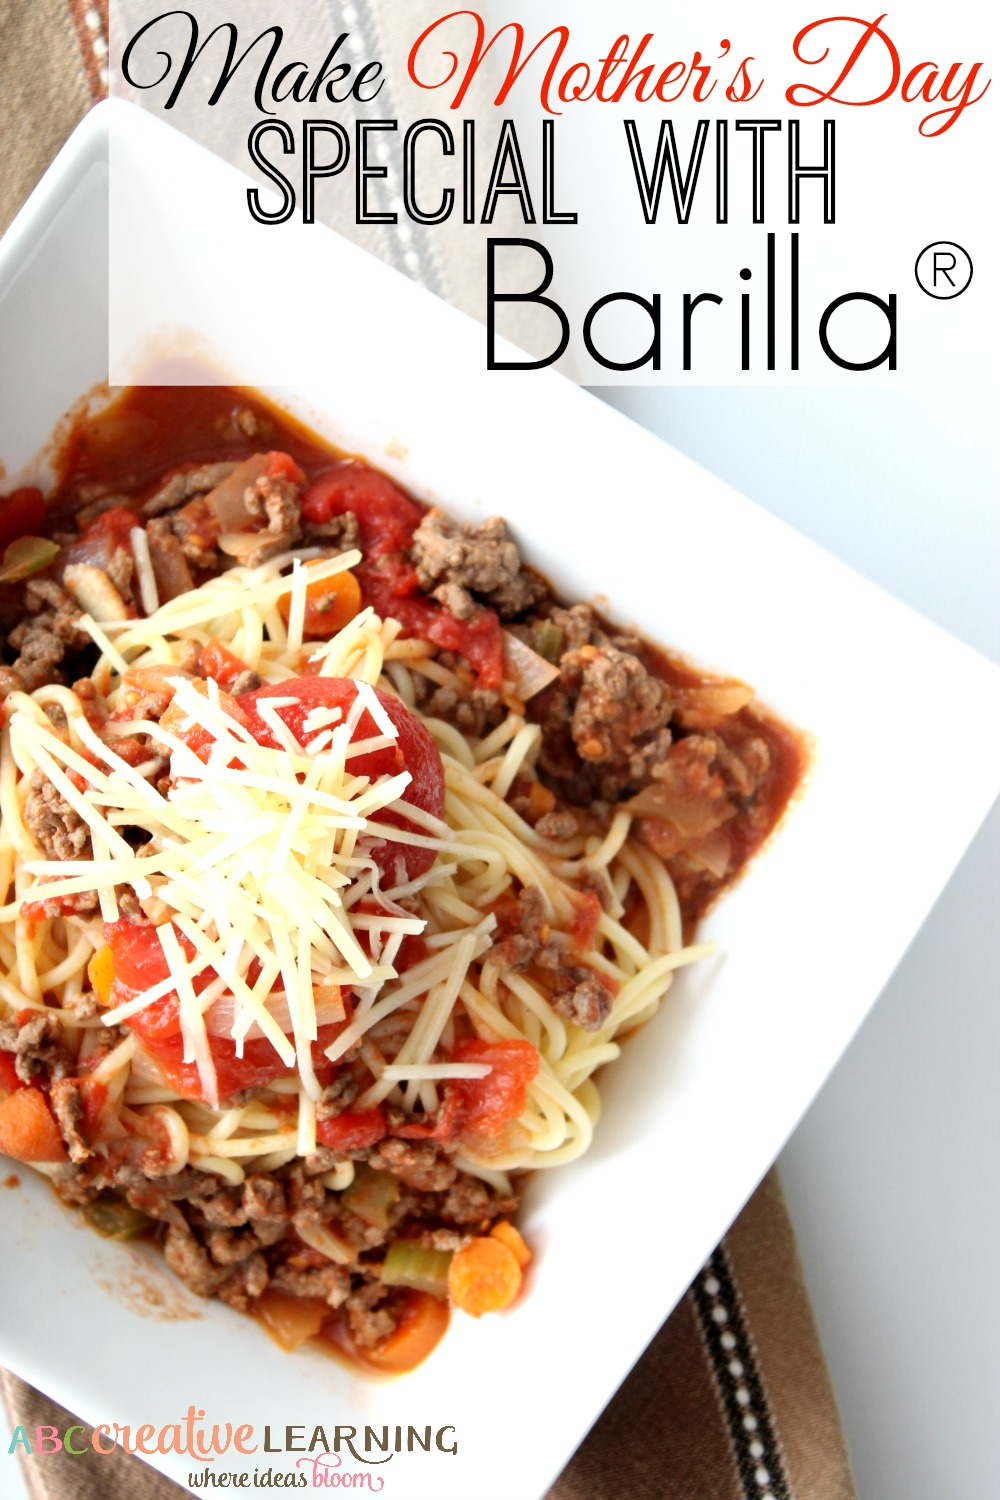 IMake Mother's Day Special with Barilla®